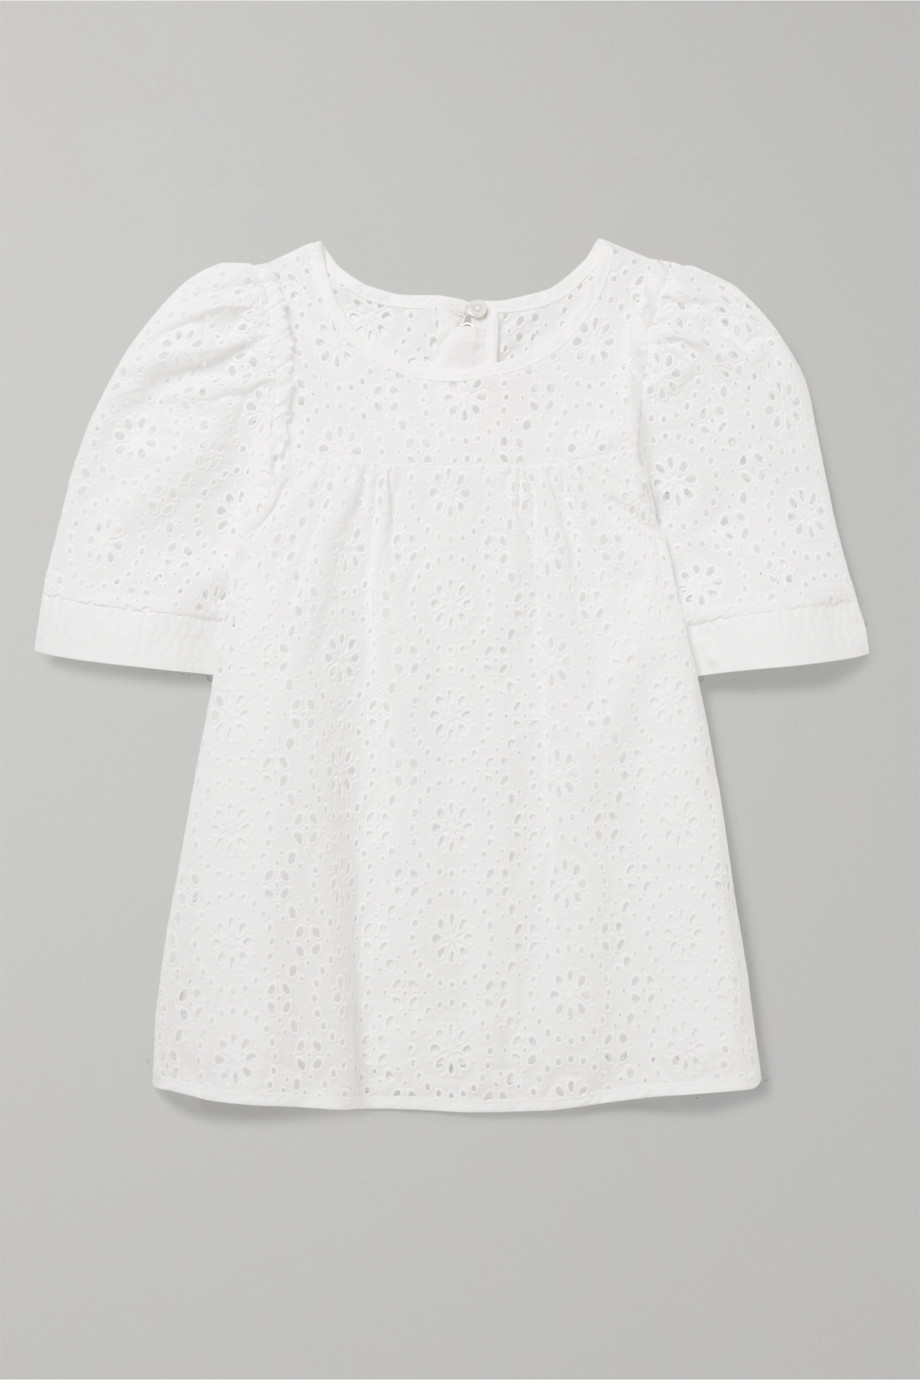 Chloé Kids Ages 2 - 5 broderie anglaise cotton top